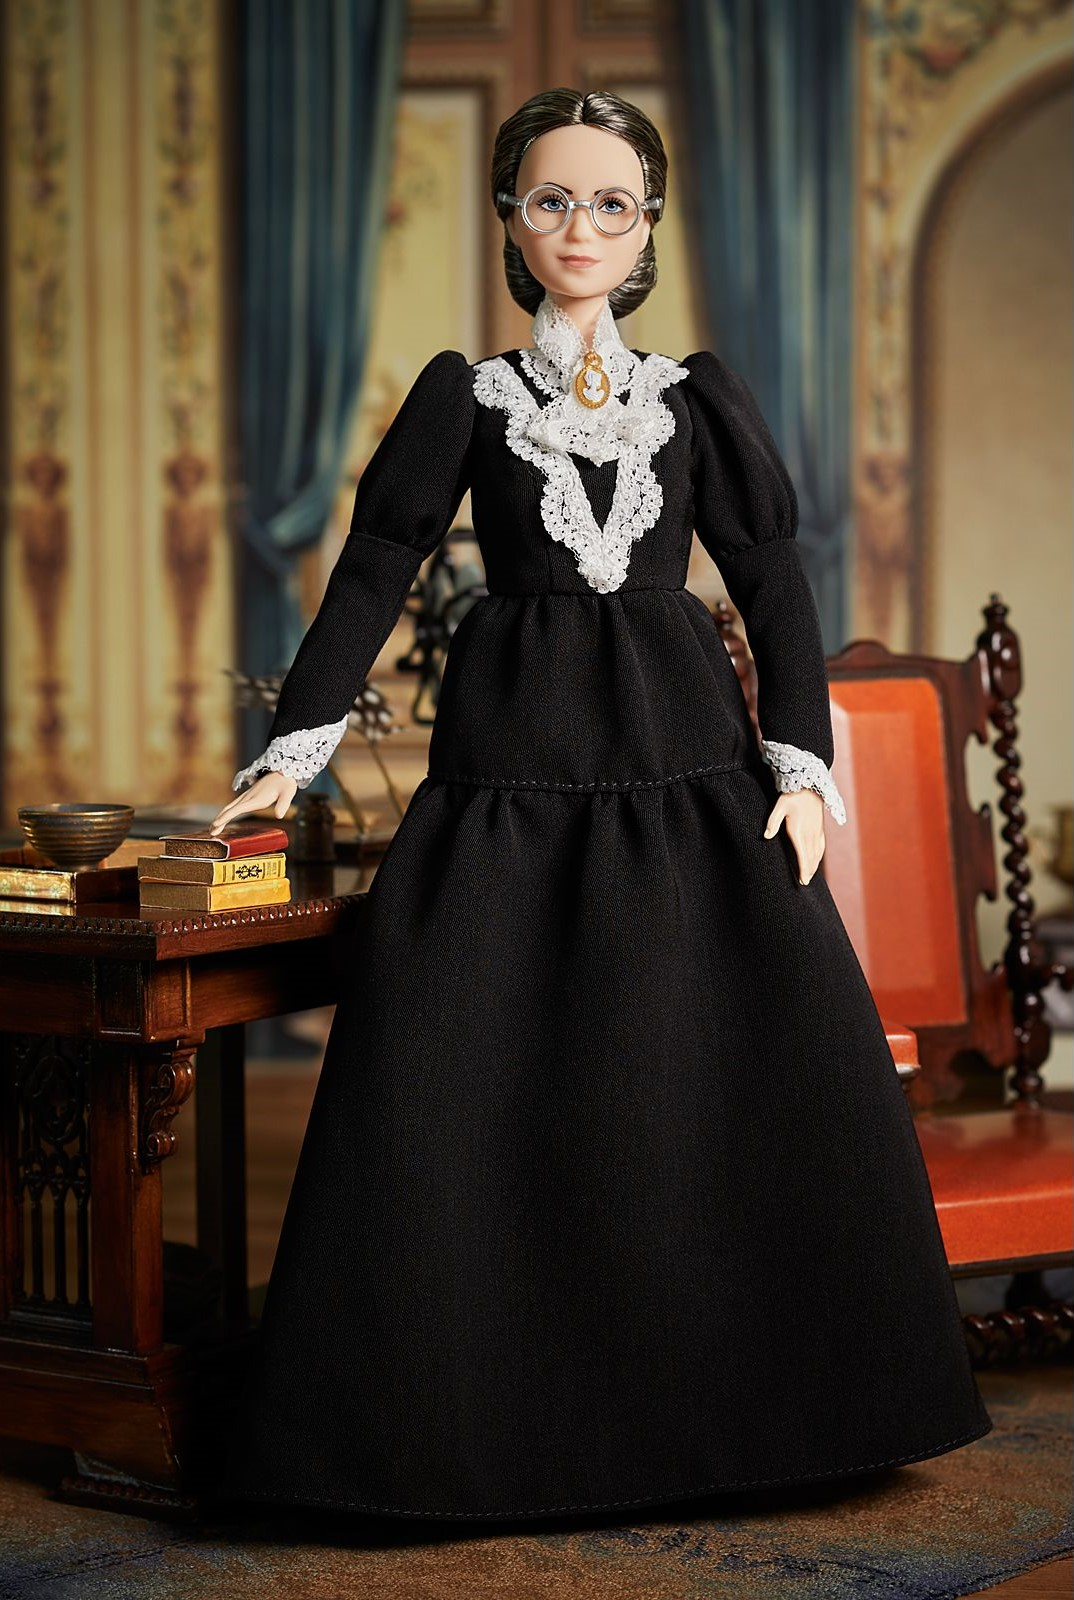 Women's rights activist Susan B. Anthony gets her own Barbie doll 12